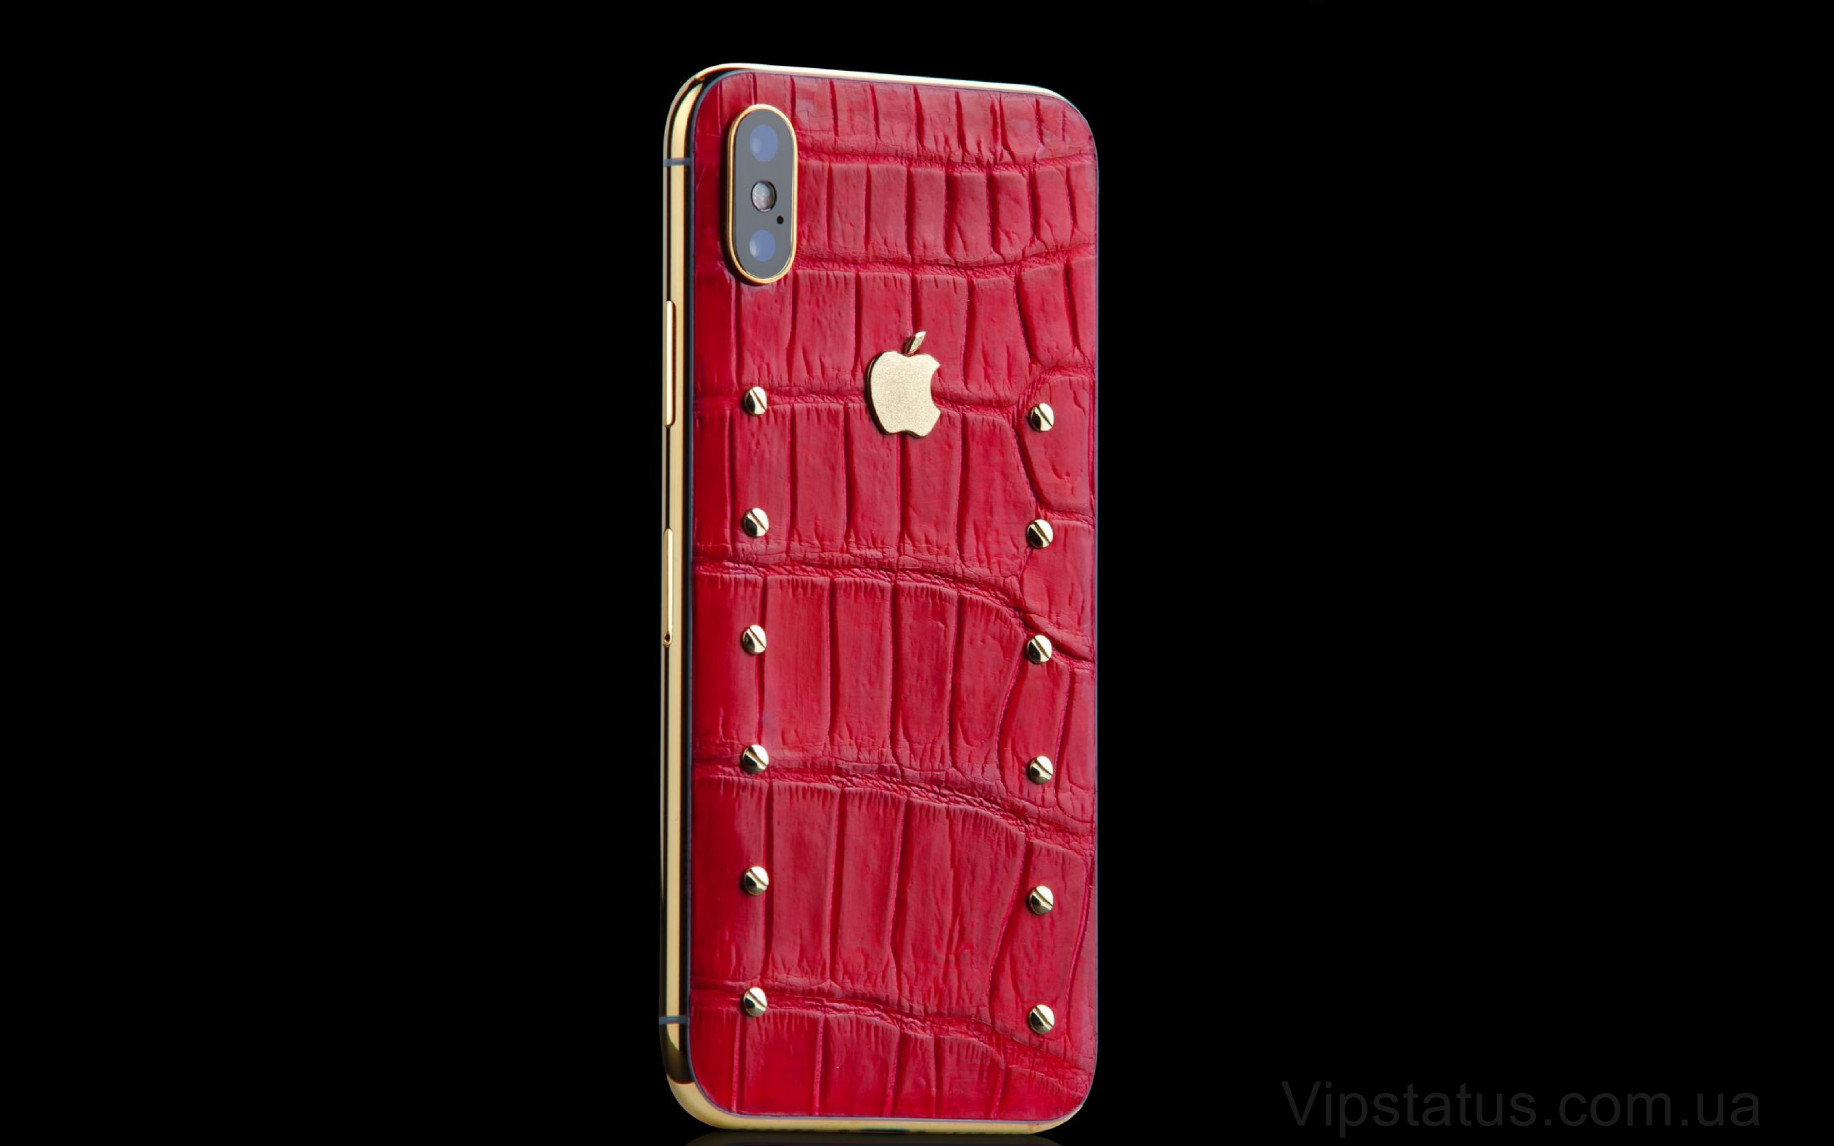 Элитный Red Princess IPHONE 11 PRO MAX 512 GB Red Princess IPHONE 11 PRO MAX 512 GB изображение 1